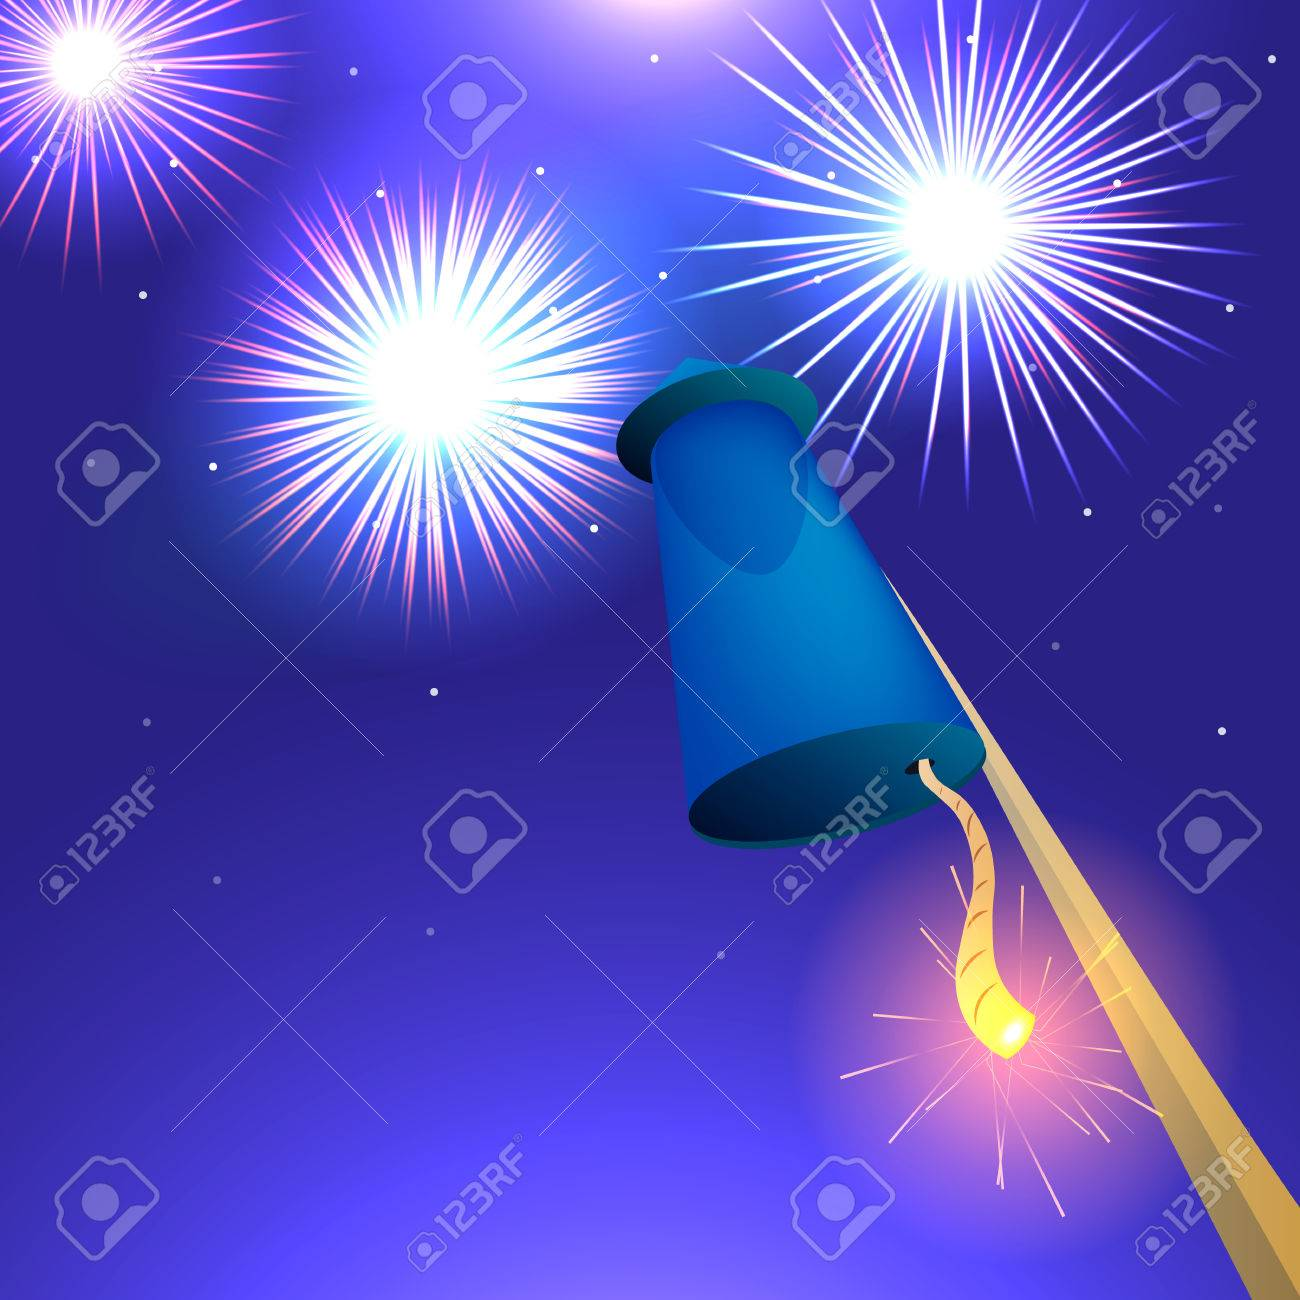 blue racket before takeoff vector illustration of fireworks rh 123rf com Shooting Fireworks Fireworks Vector Transparent